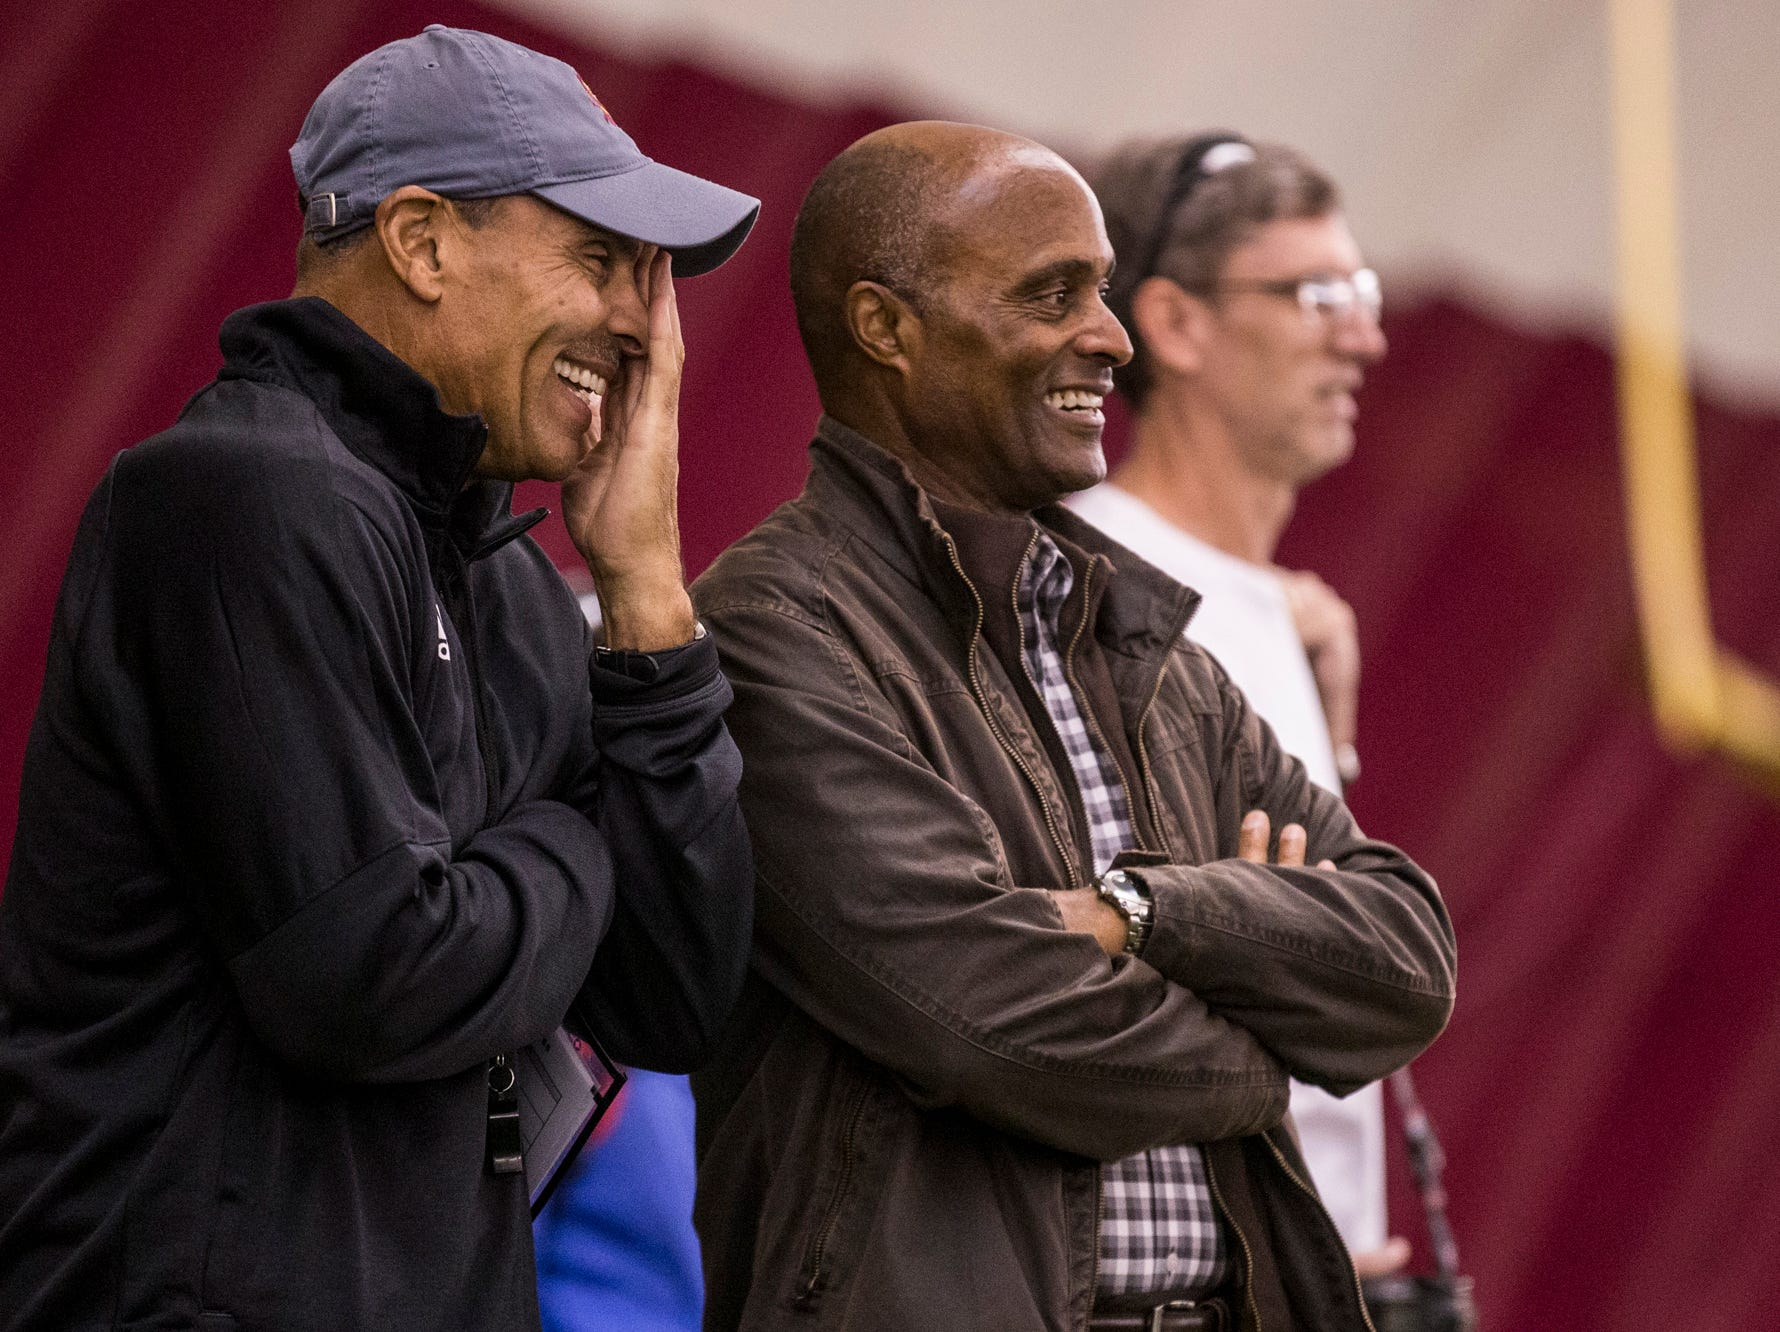 Head coach Herm Edwards laughs with athletic director Ray Anderson during practice on Tuesday, Feb. 5, 2019, at the Verde Dickey Dome in Tempe, Ariz.